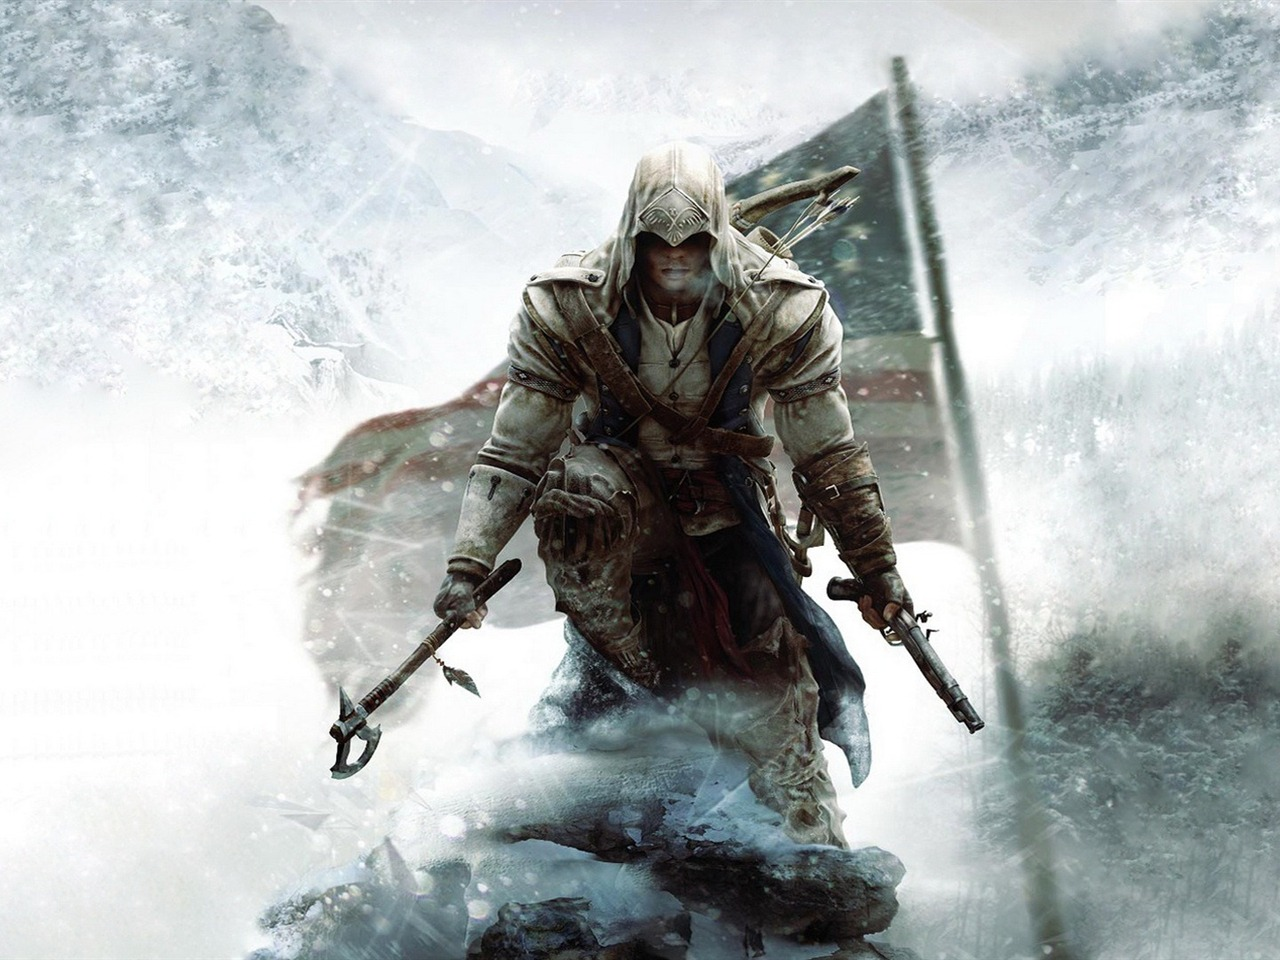 Assassins Creed 3 Game Hd Wallpaper 09 Preview 10wallpaper Com